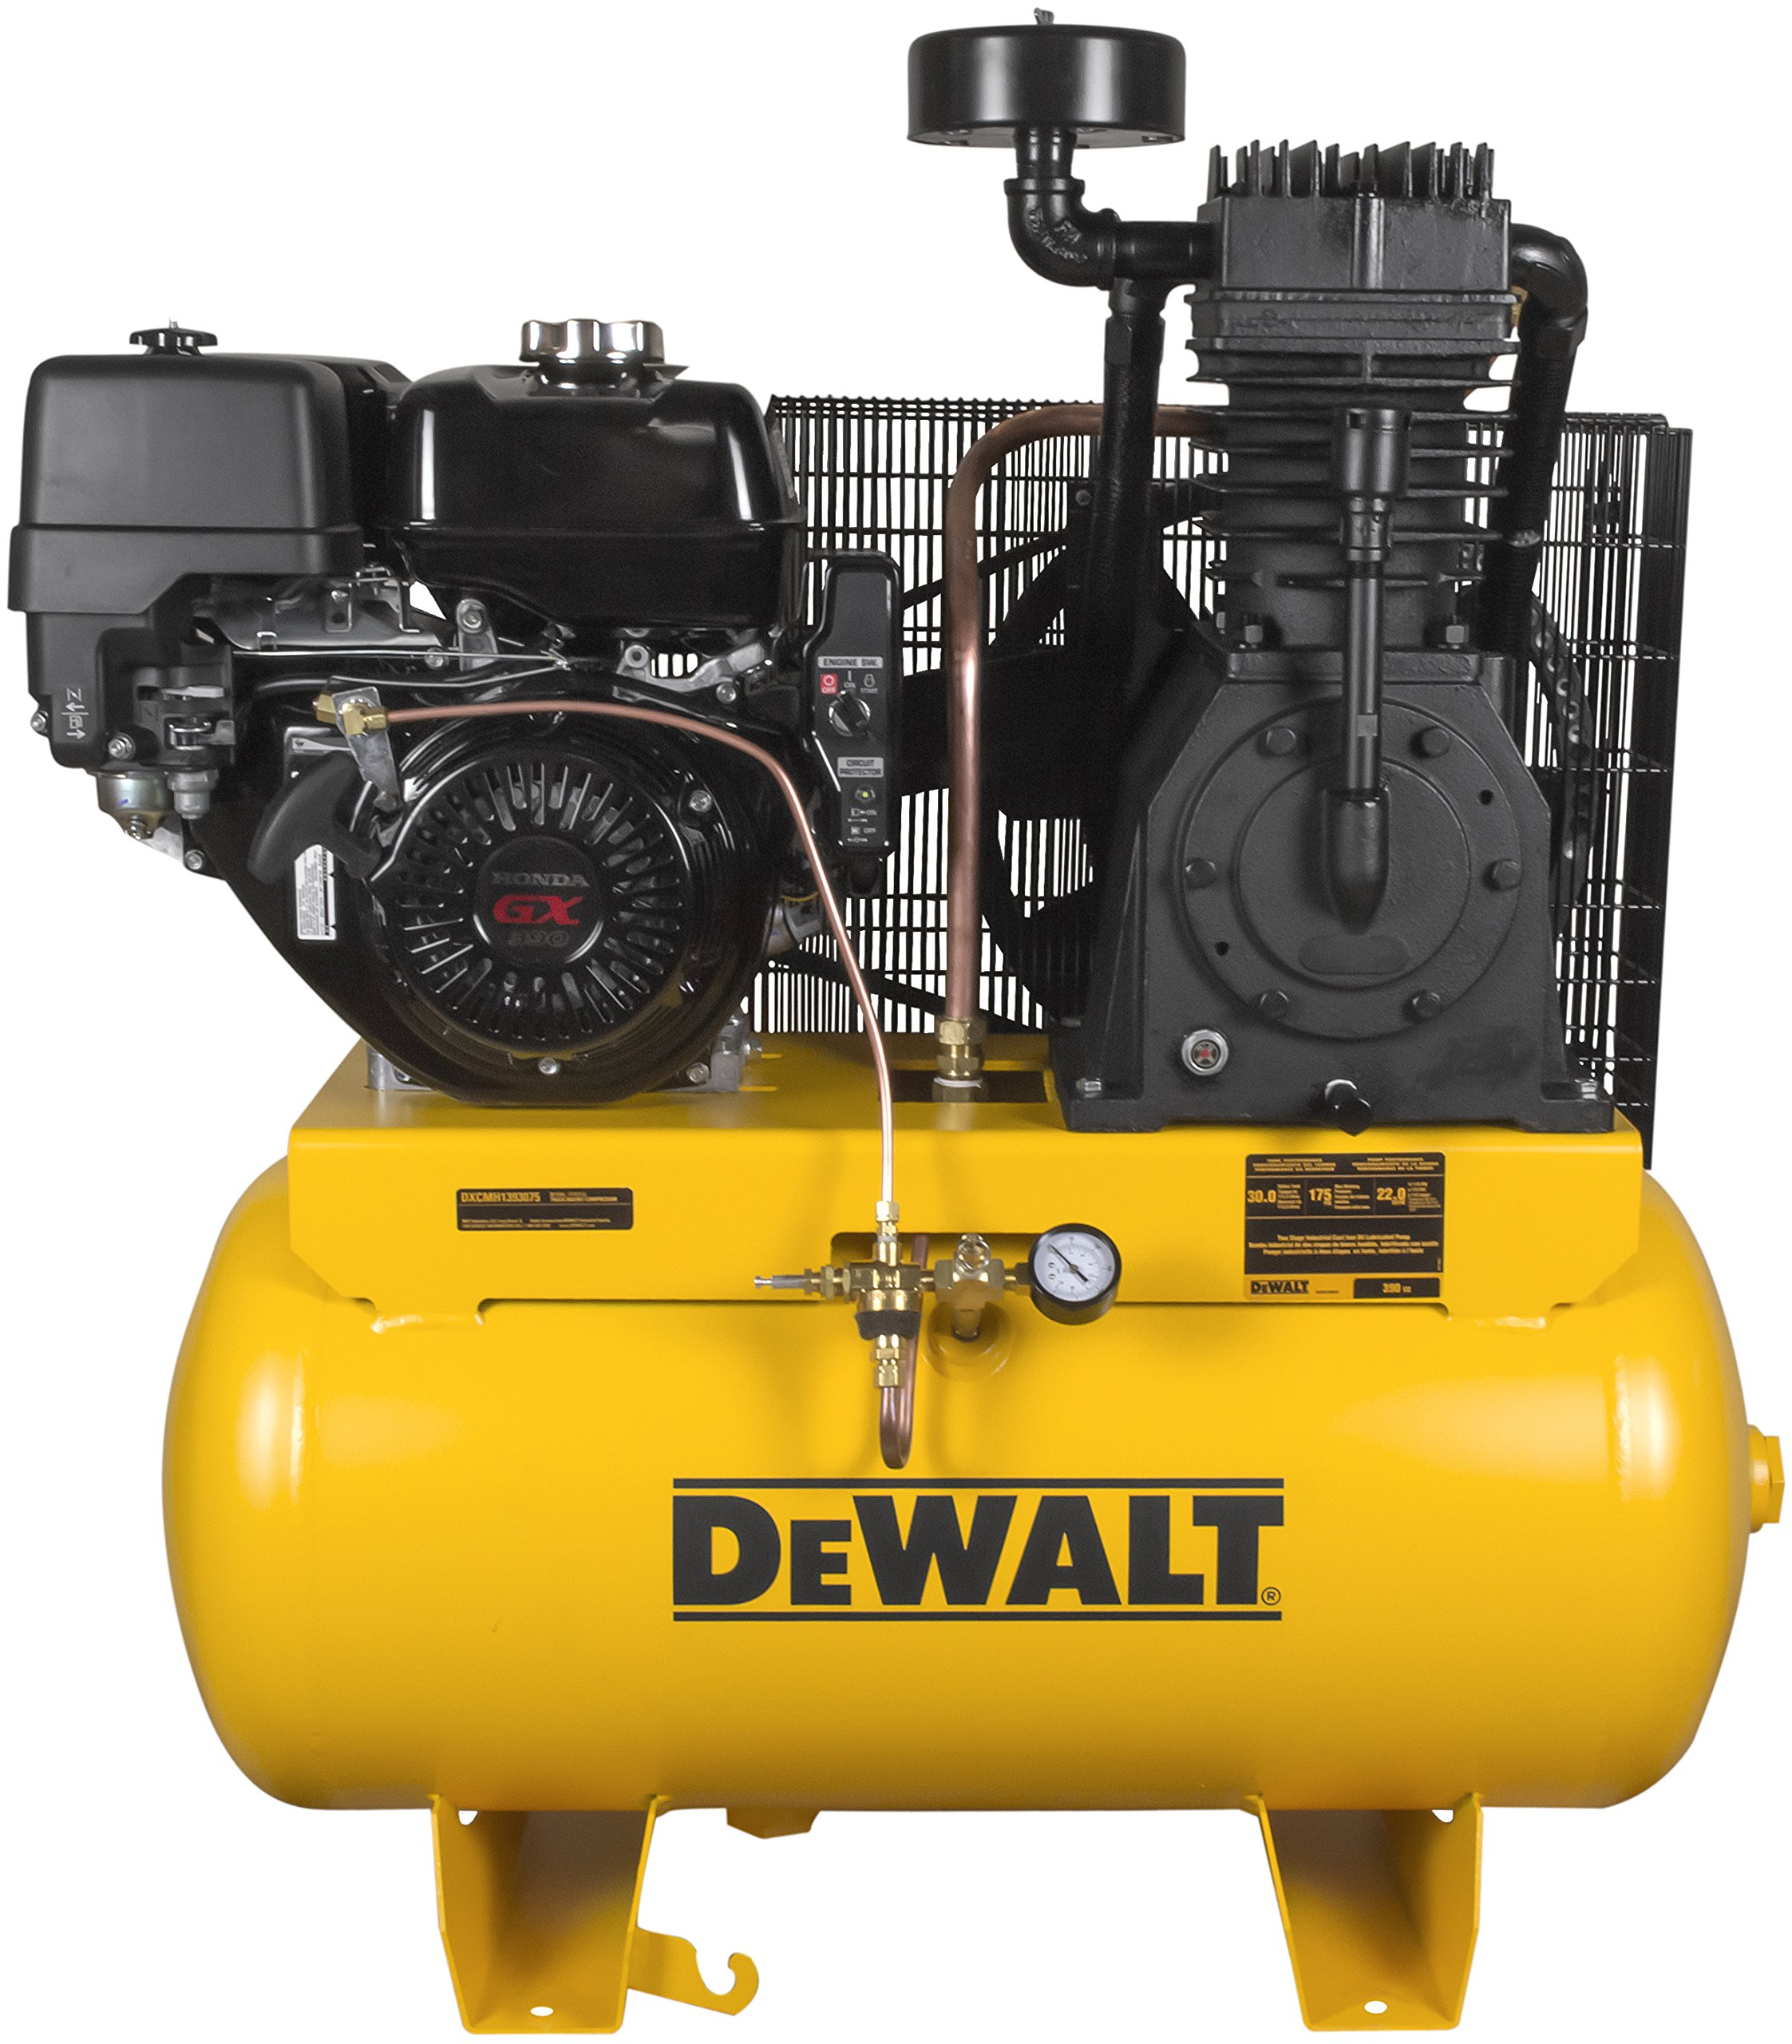 DeWalt DXCMH1393075 Two Stage Industrial Air Compressor, 30-Gallon, Cast Iron